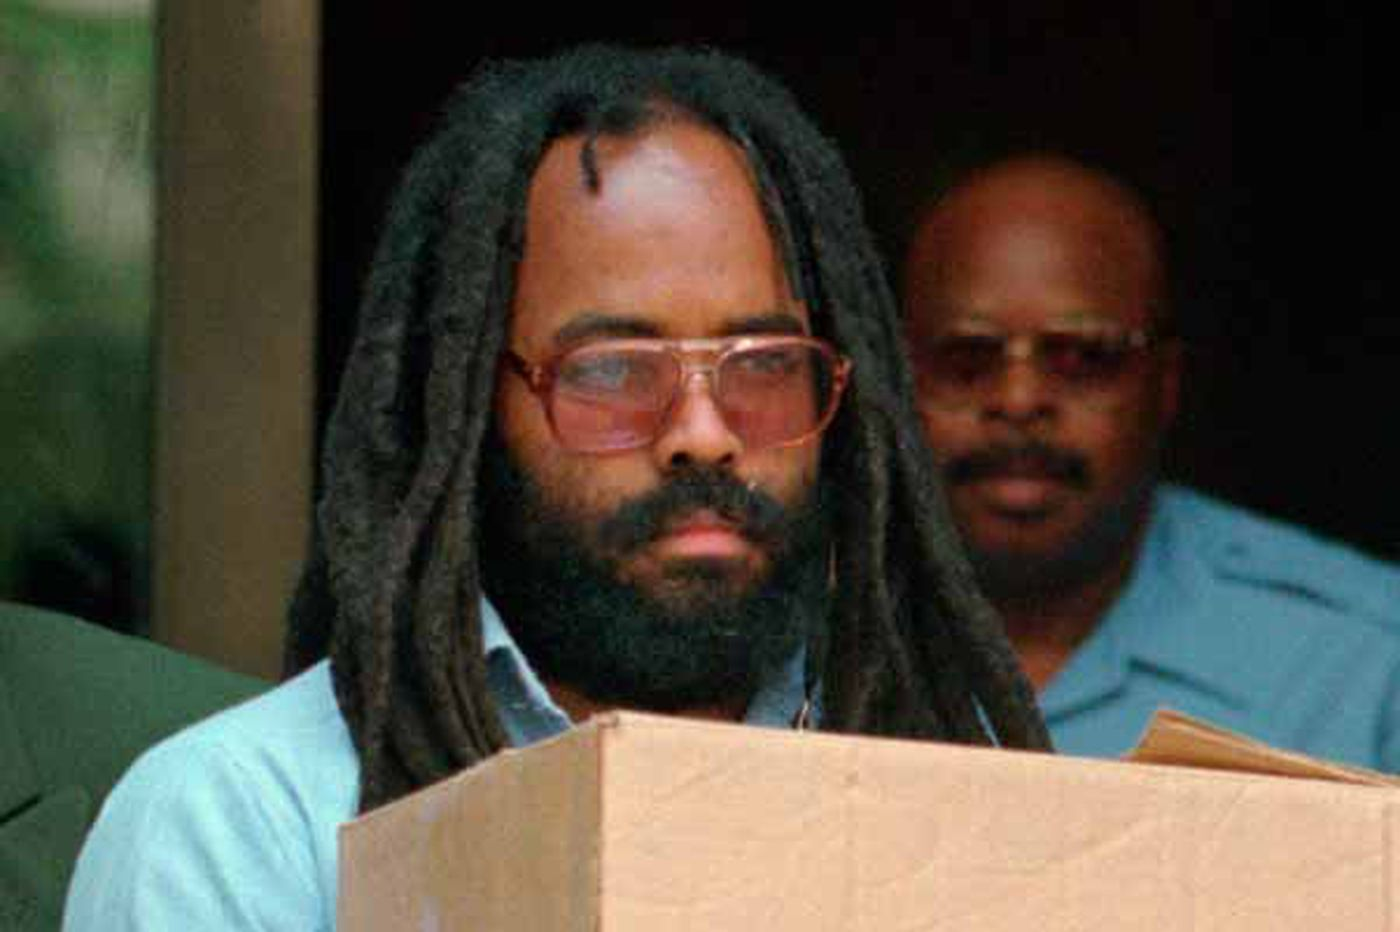 Philly DA's Office finds file boxes in Abu-Jamal case